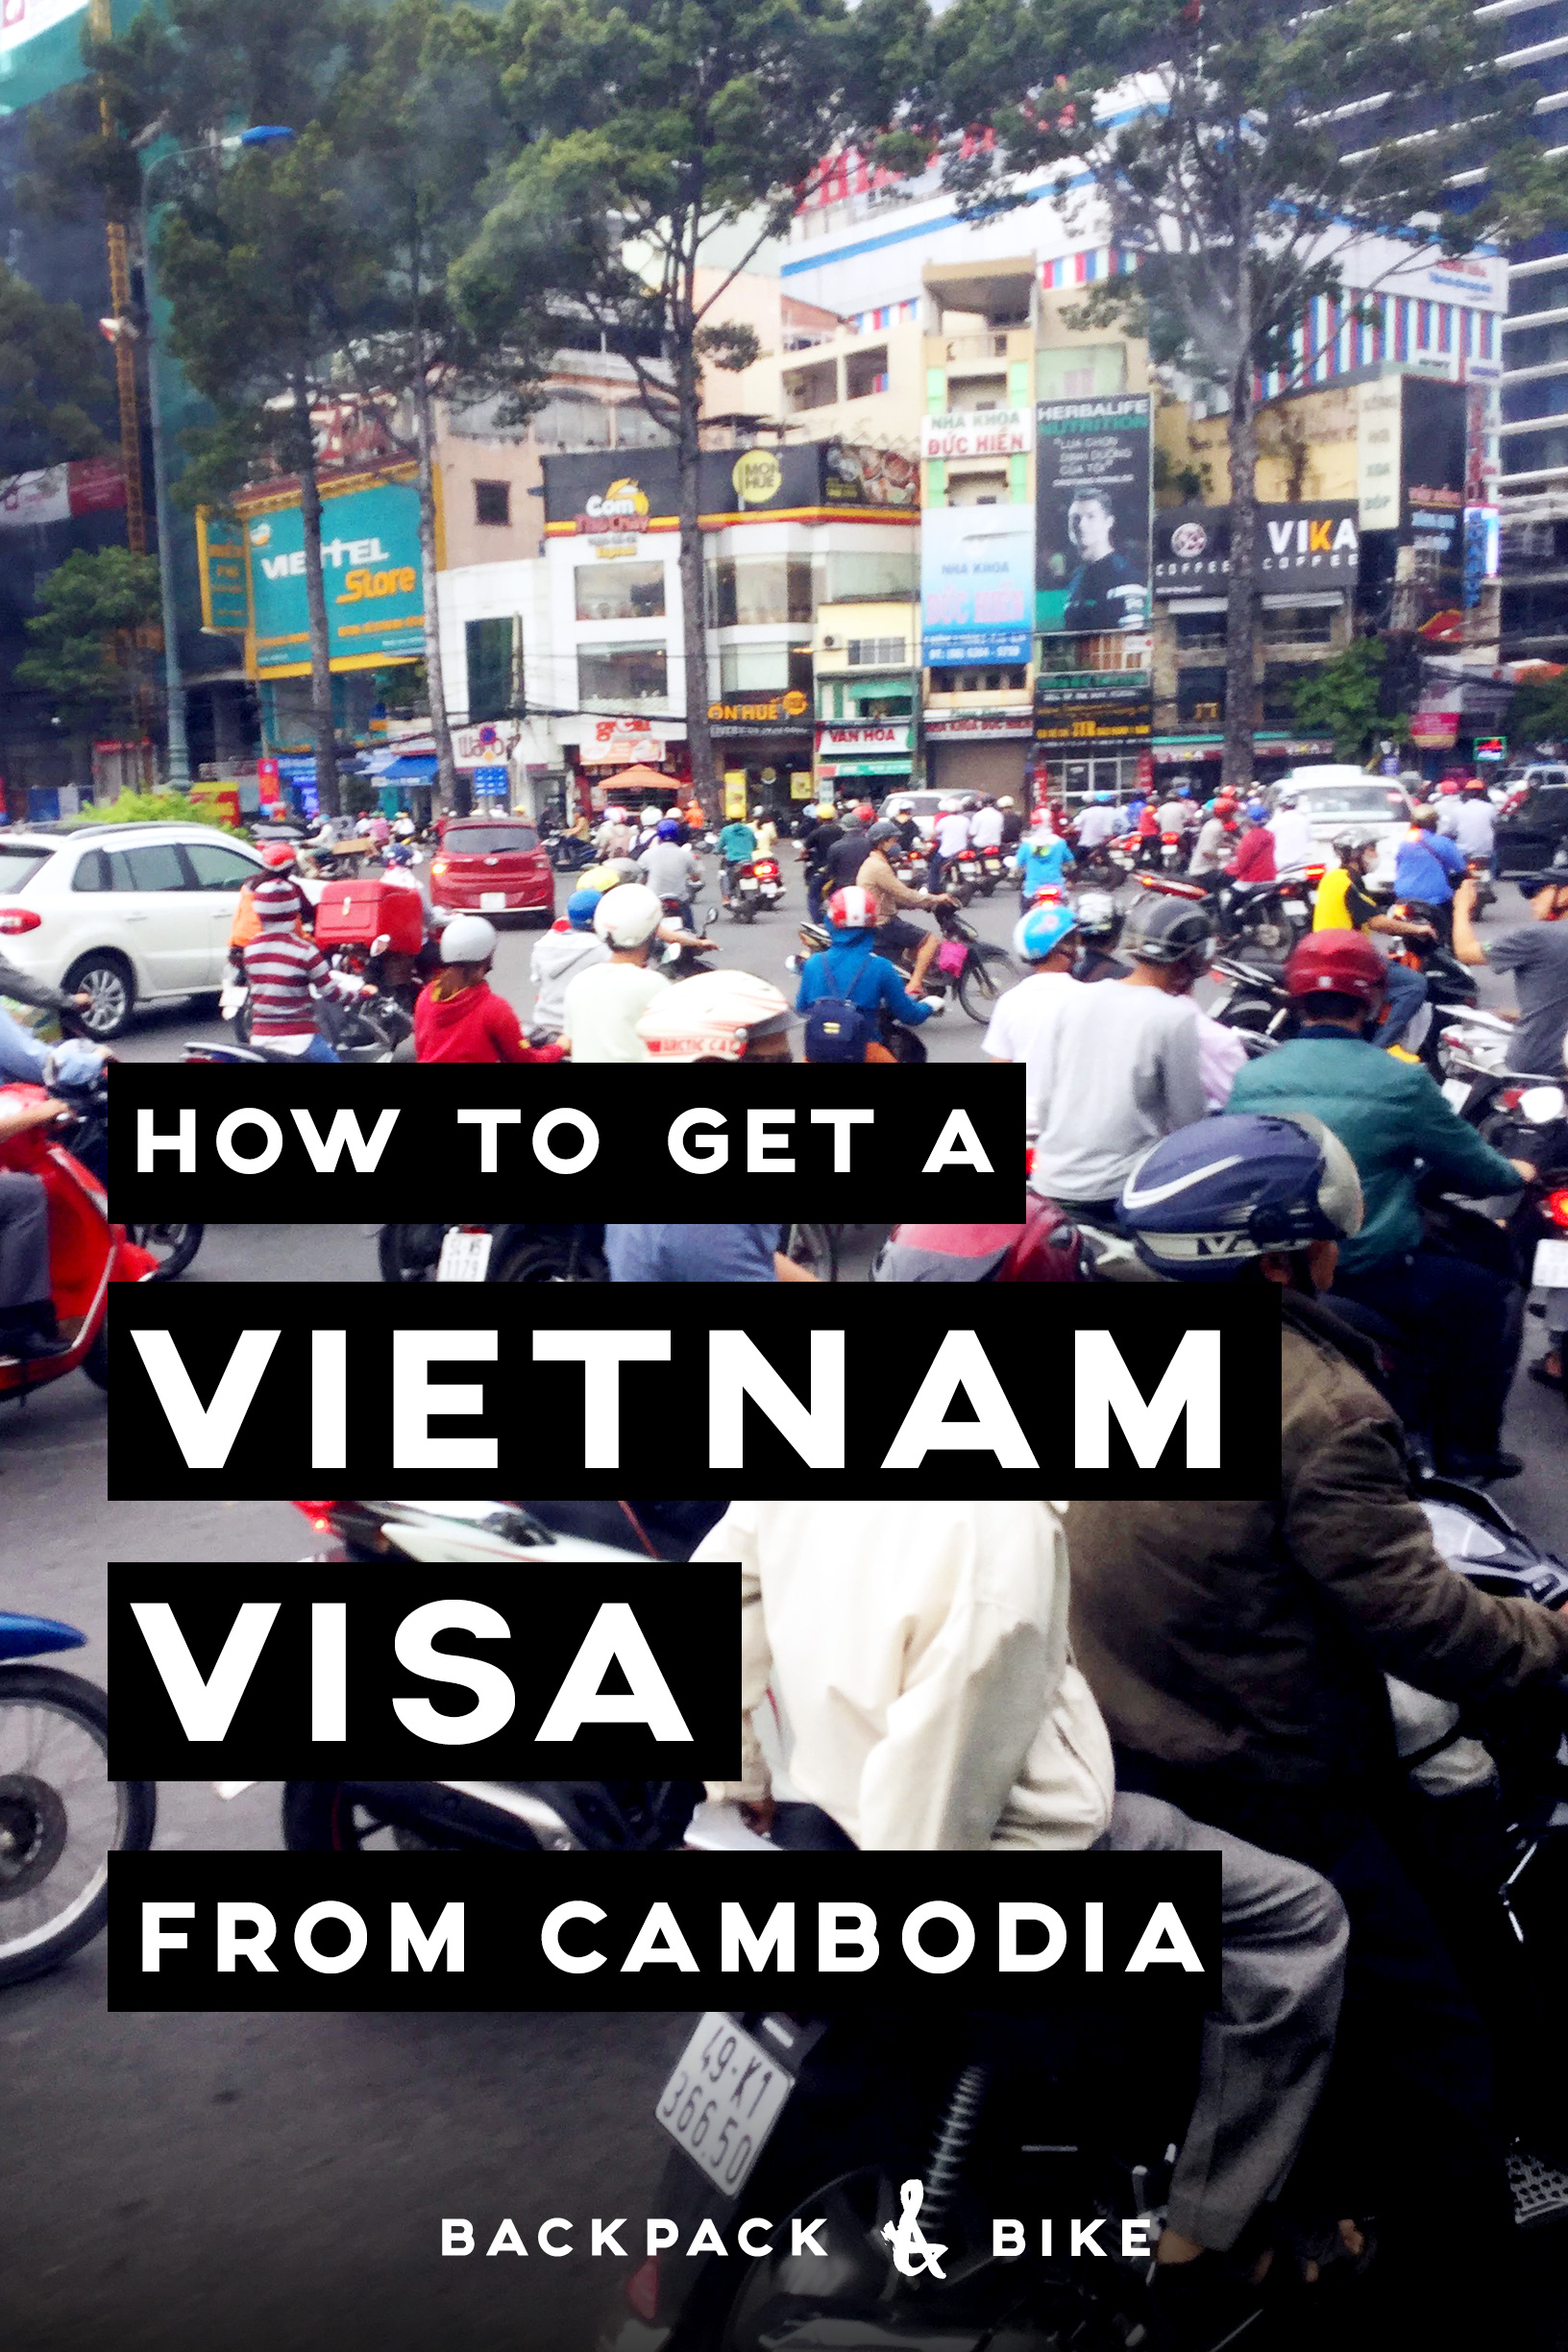 How to get a Vietnam Visa from Cambodia - Backpack & Bike